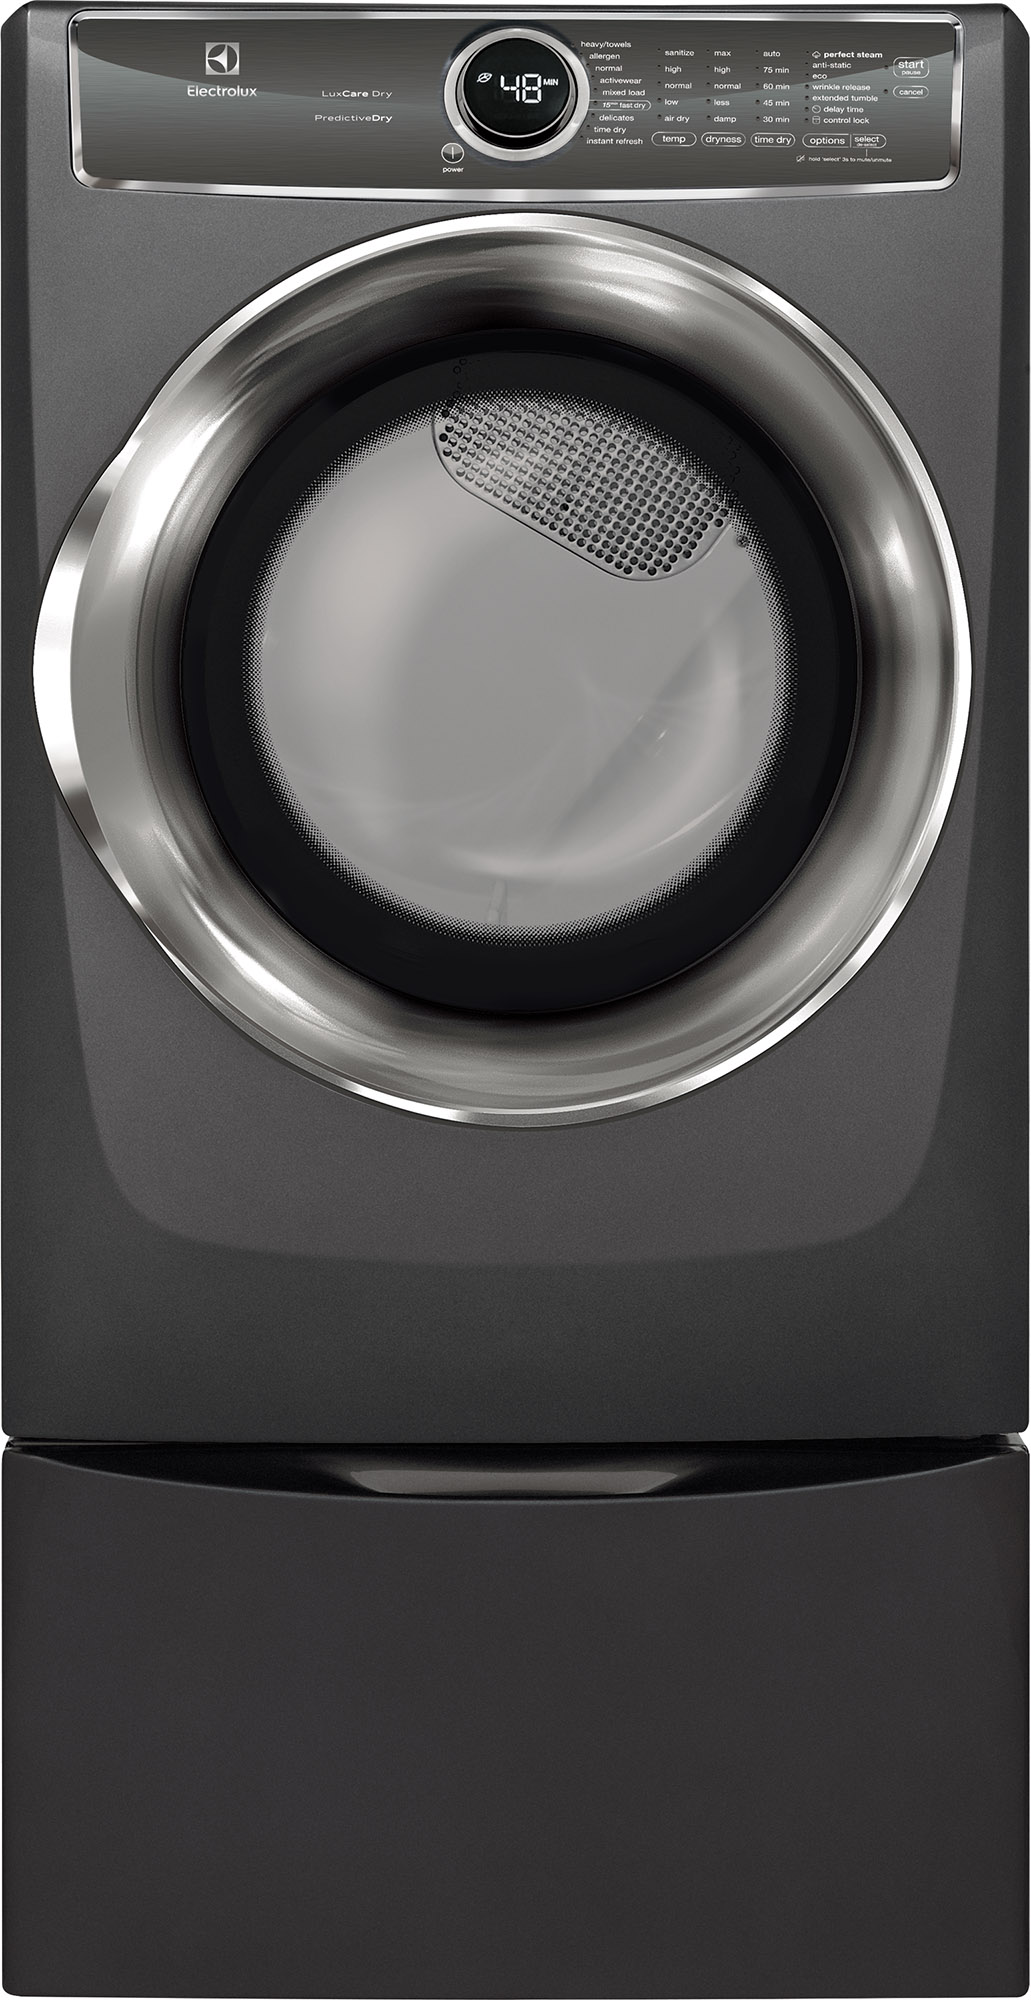 New Washer And Dryer New Electrolux Washers And Dryers Offer The Ultimate In Clean And